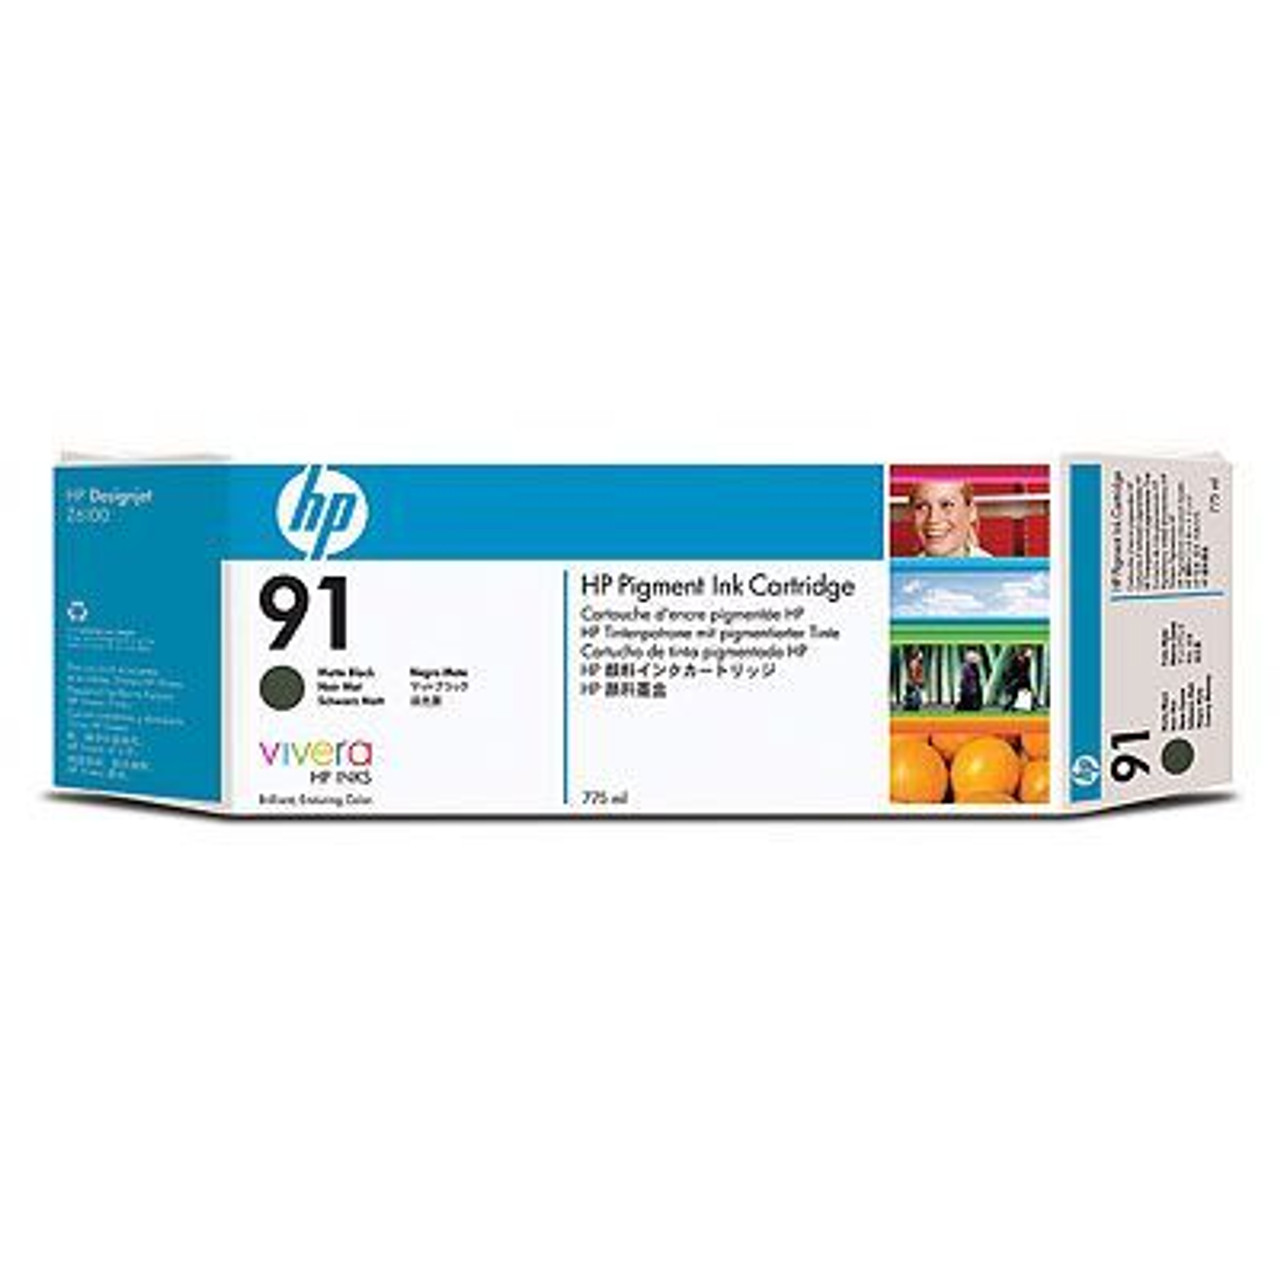 Image for HP 91 775ml ink cartridge 1 x black (C9464A) CX Computer Superstore